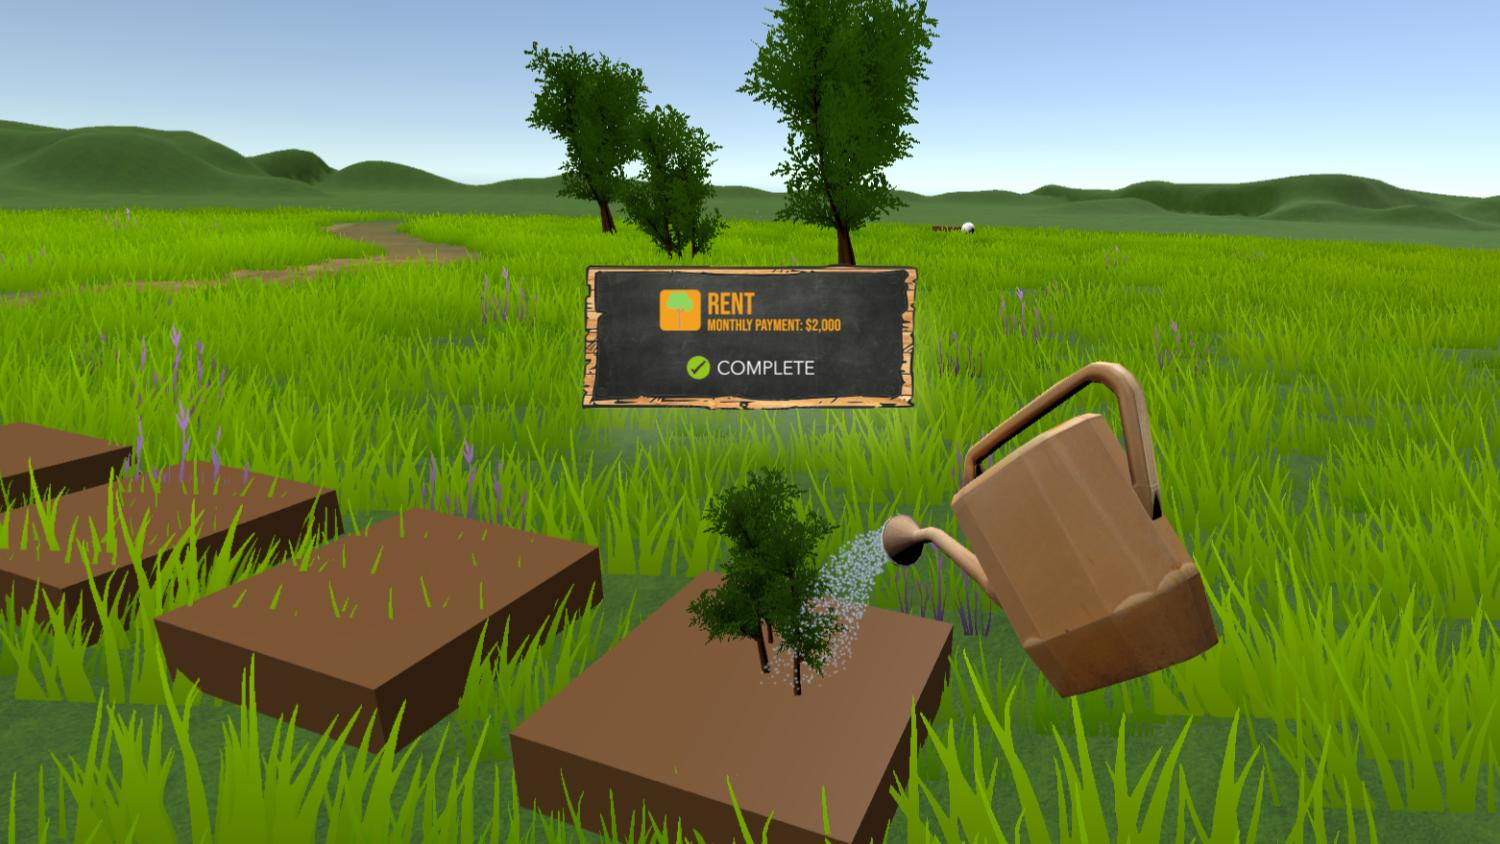 Copy of CITI VR GARDEN (19).jpg